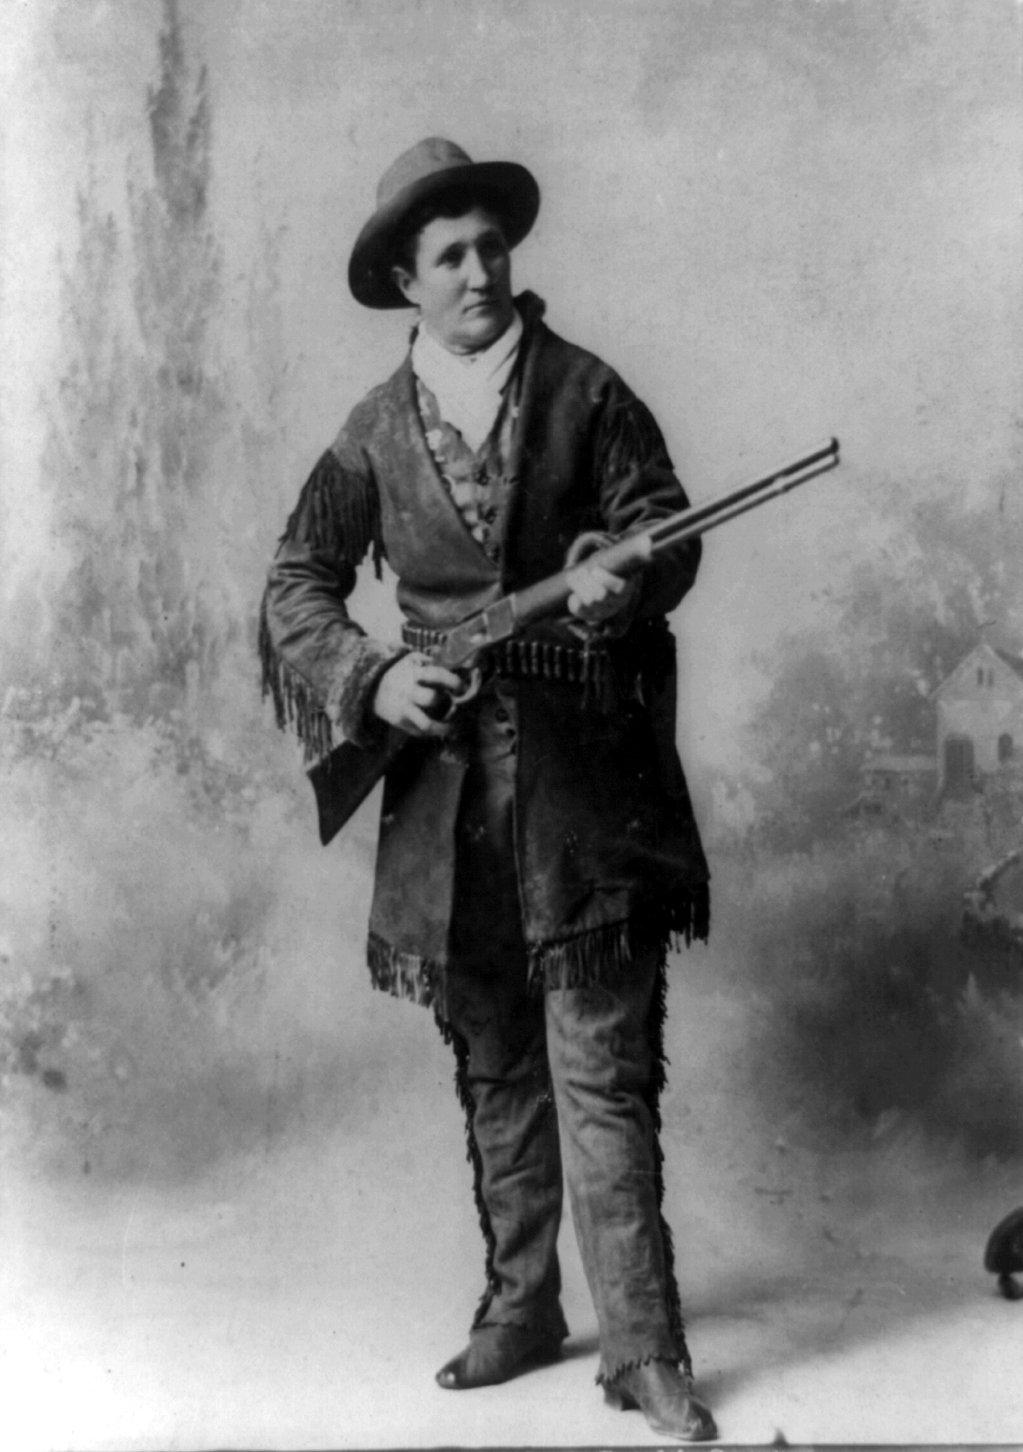 Calamity Jane in 1895 (aged 43)